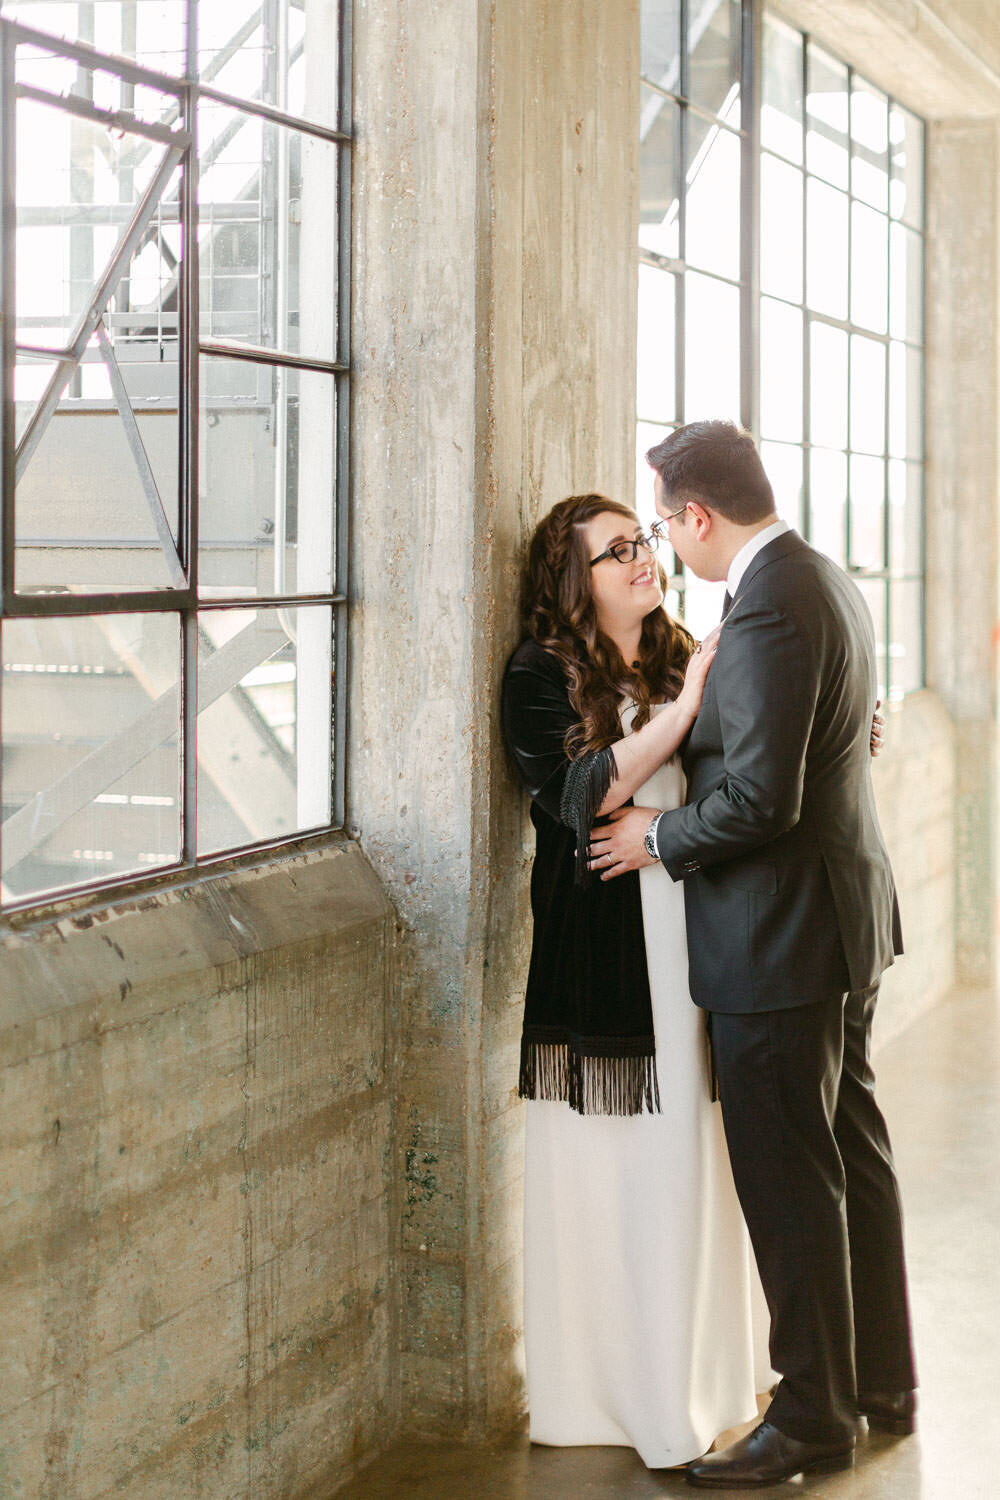 Bride and groom embracing and smiling in industrial hallway